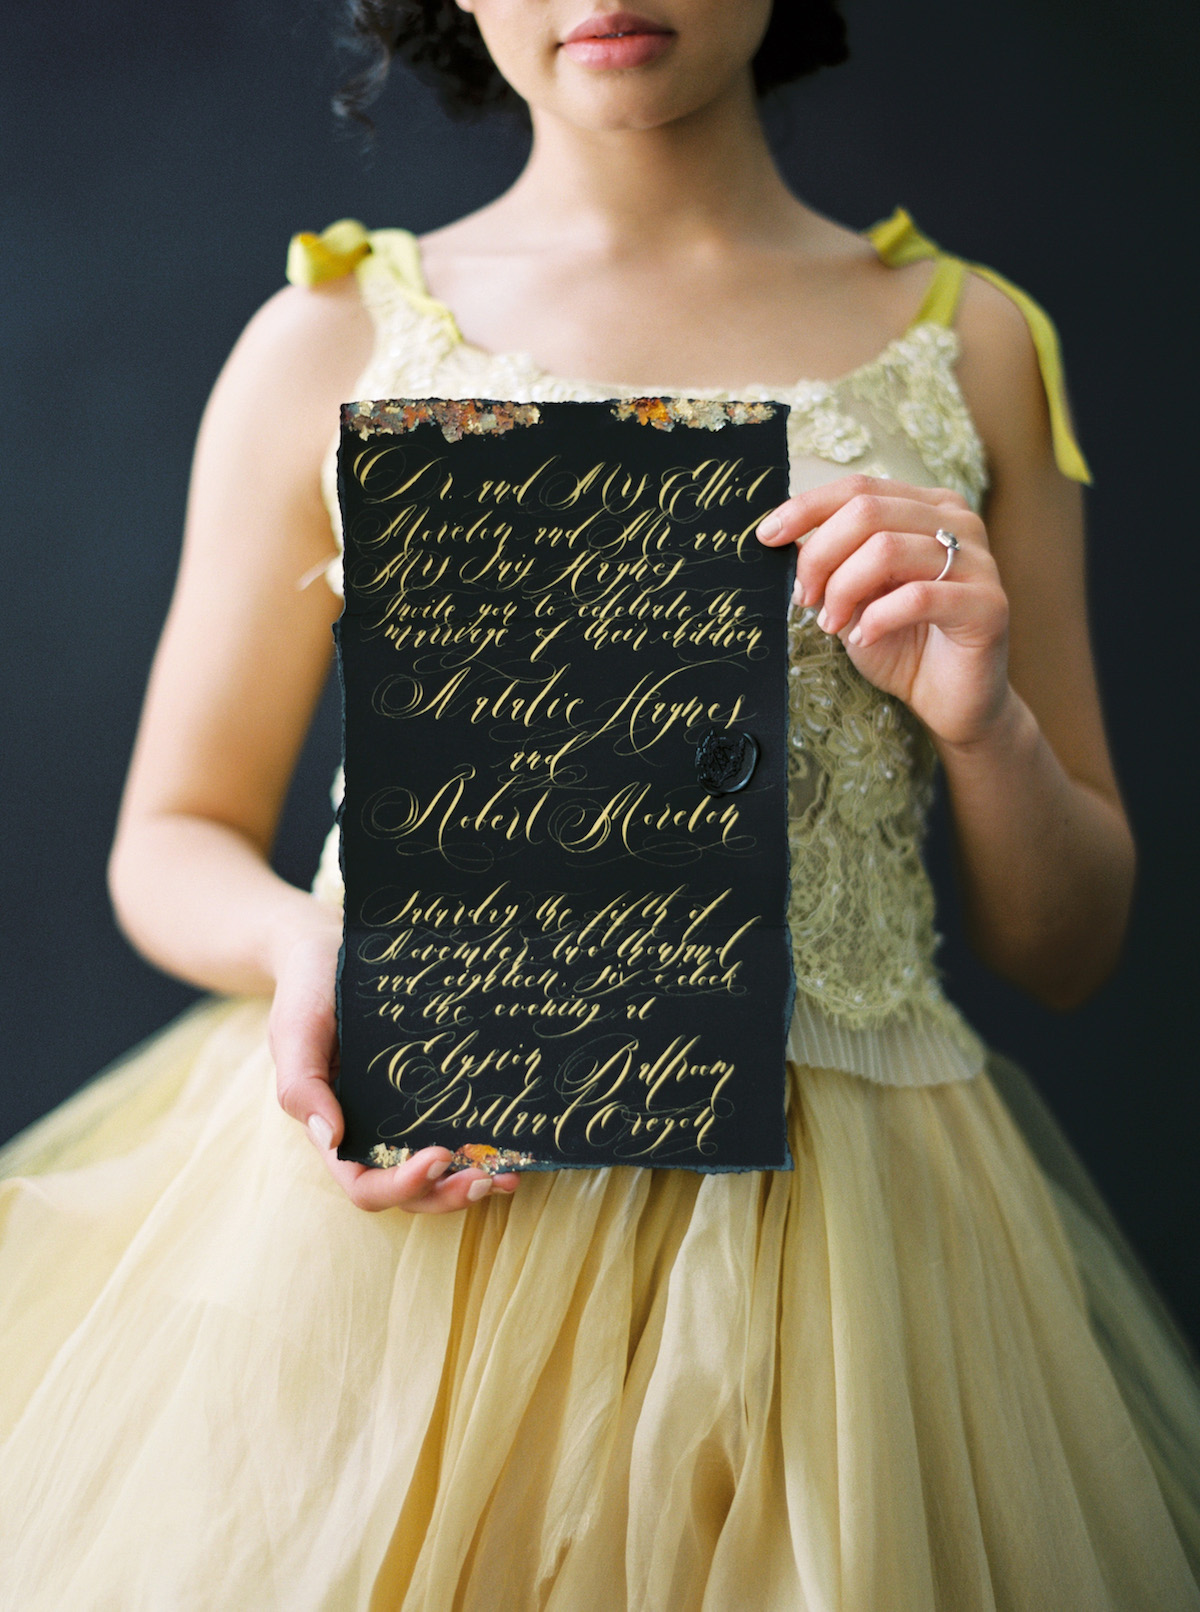 Black and gold wedding stationery with gold calligraphy for a moody Italian themed wedding